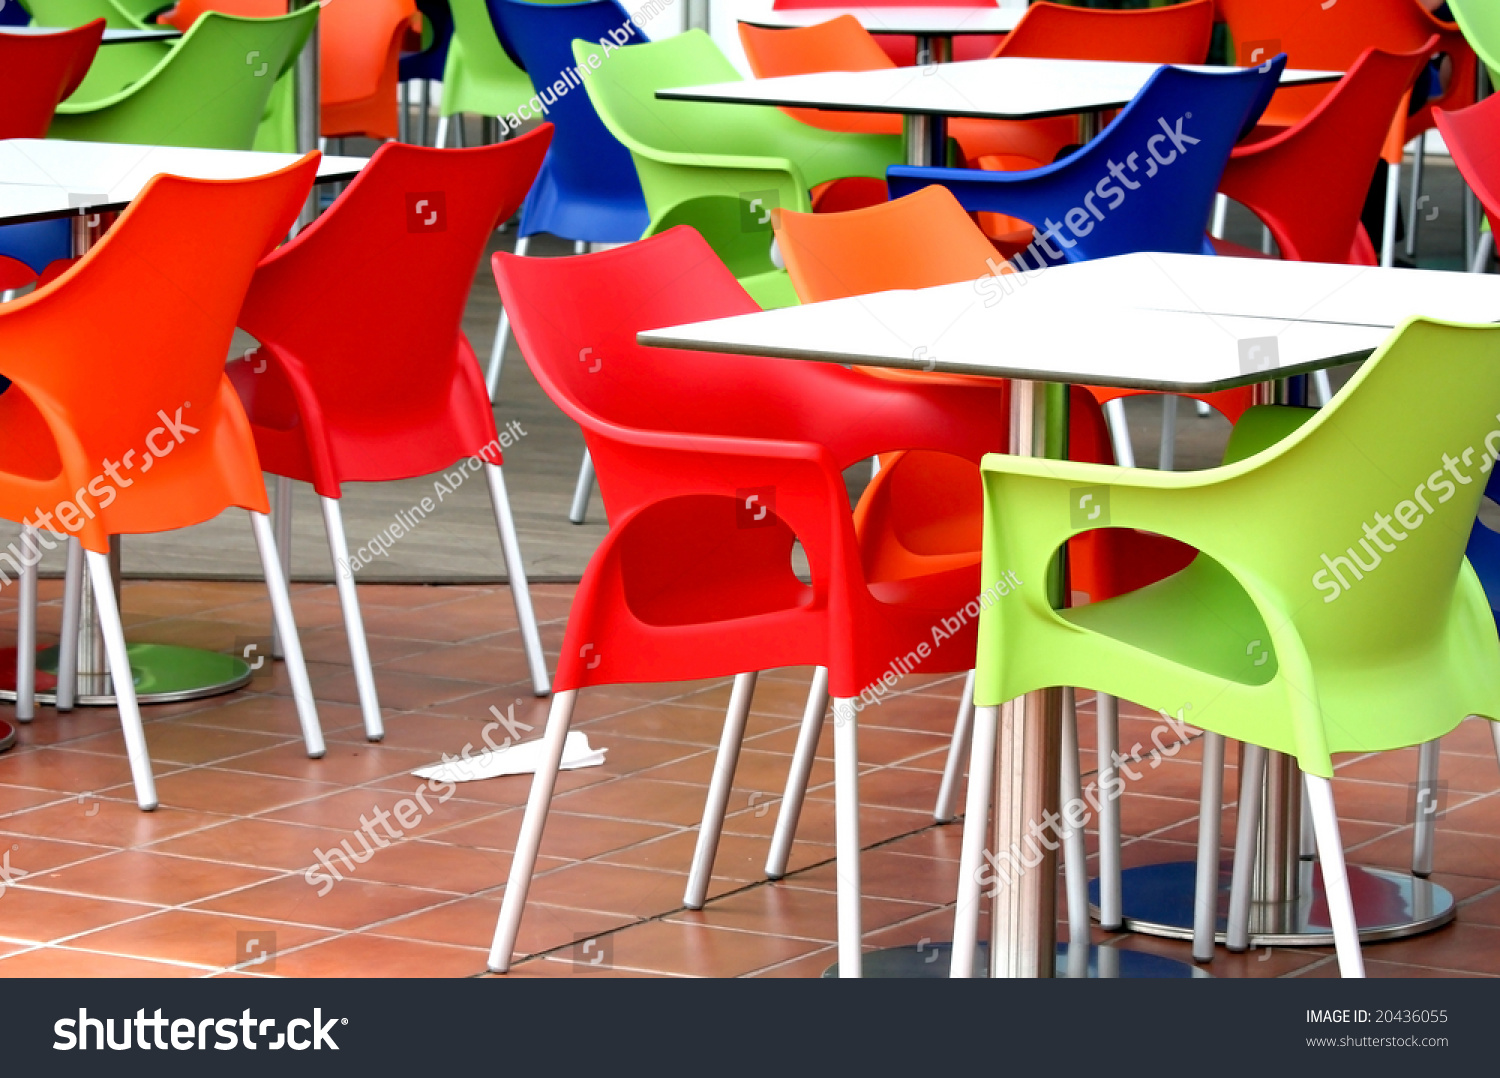 Food Chair Plastic Chairs Tables Fast Food Restaurant Stock Photo